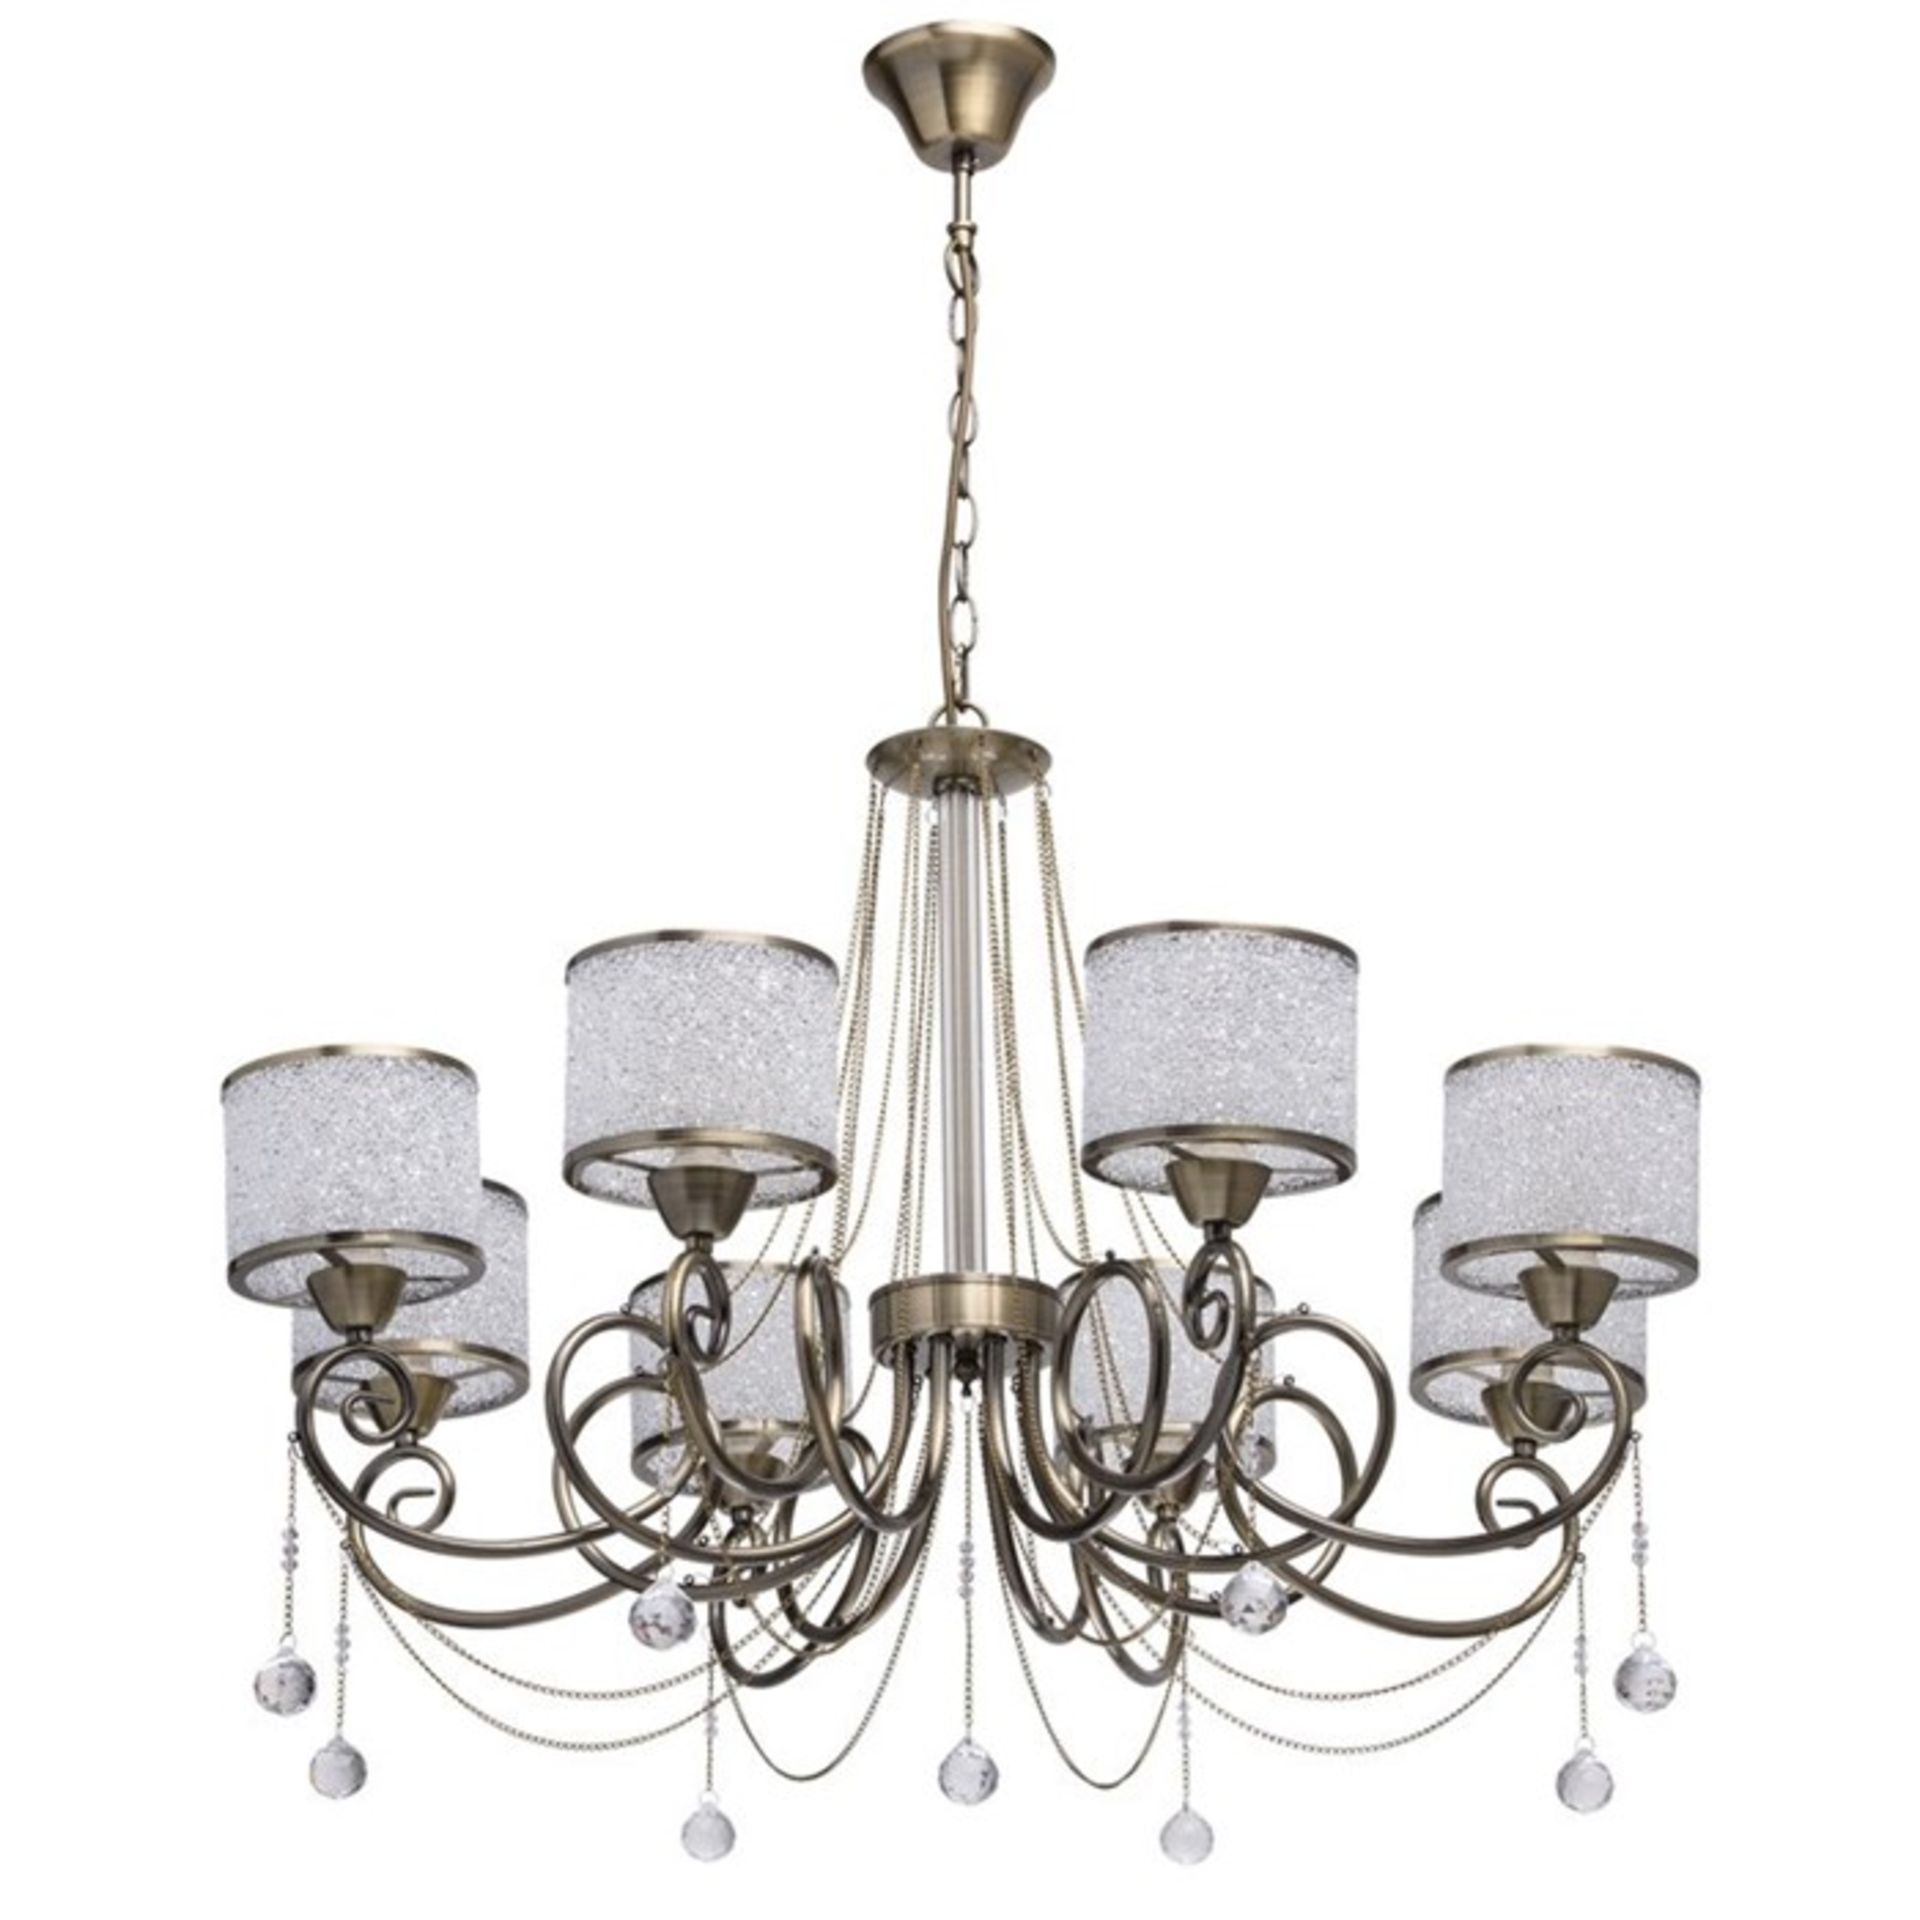 Lot 278 - Willa Arlo Interiors 8-Light Shaded Chandelier (JLIG1012 - 14785/21) 7F